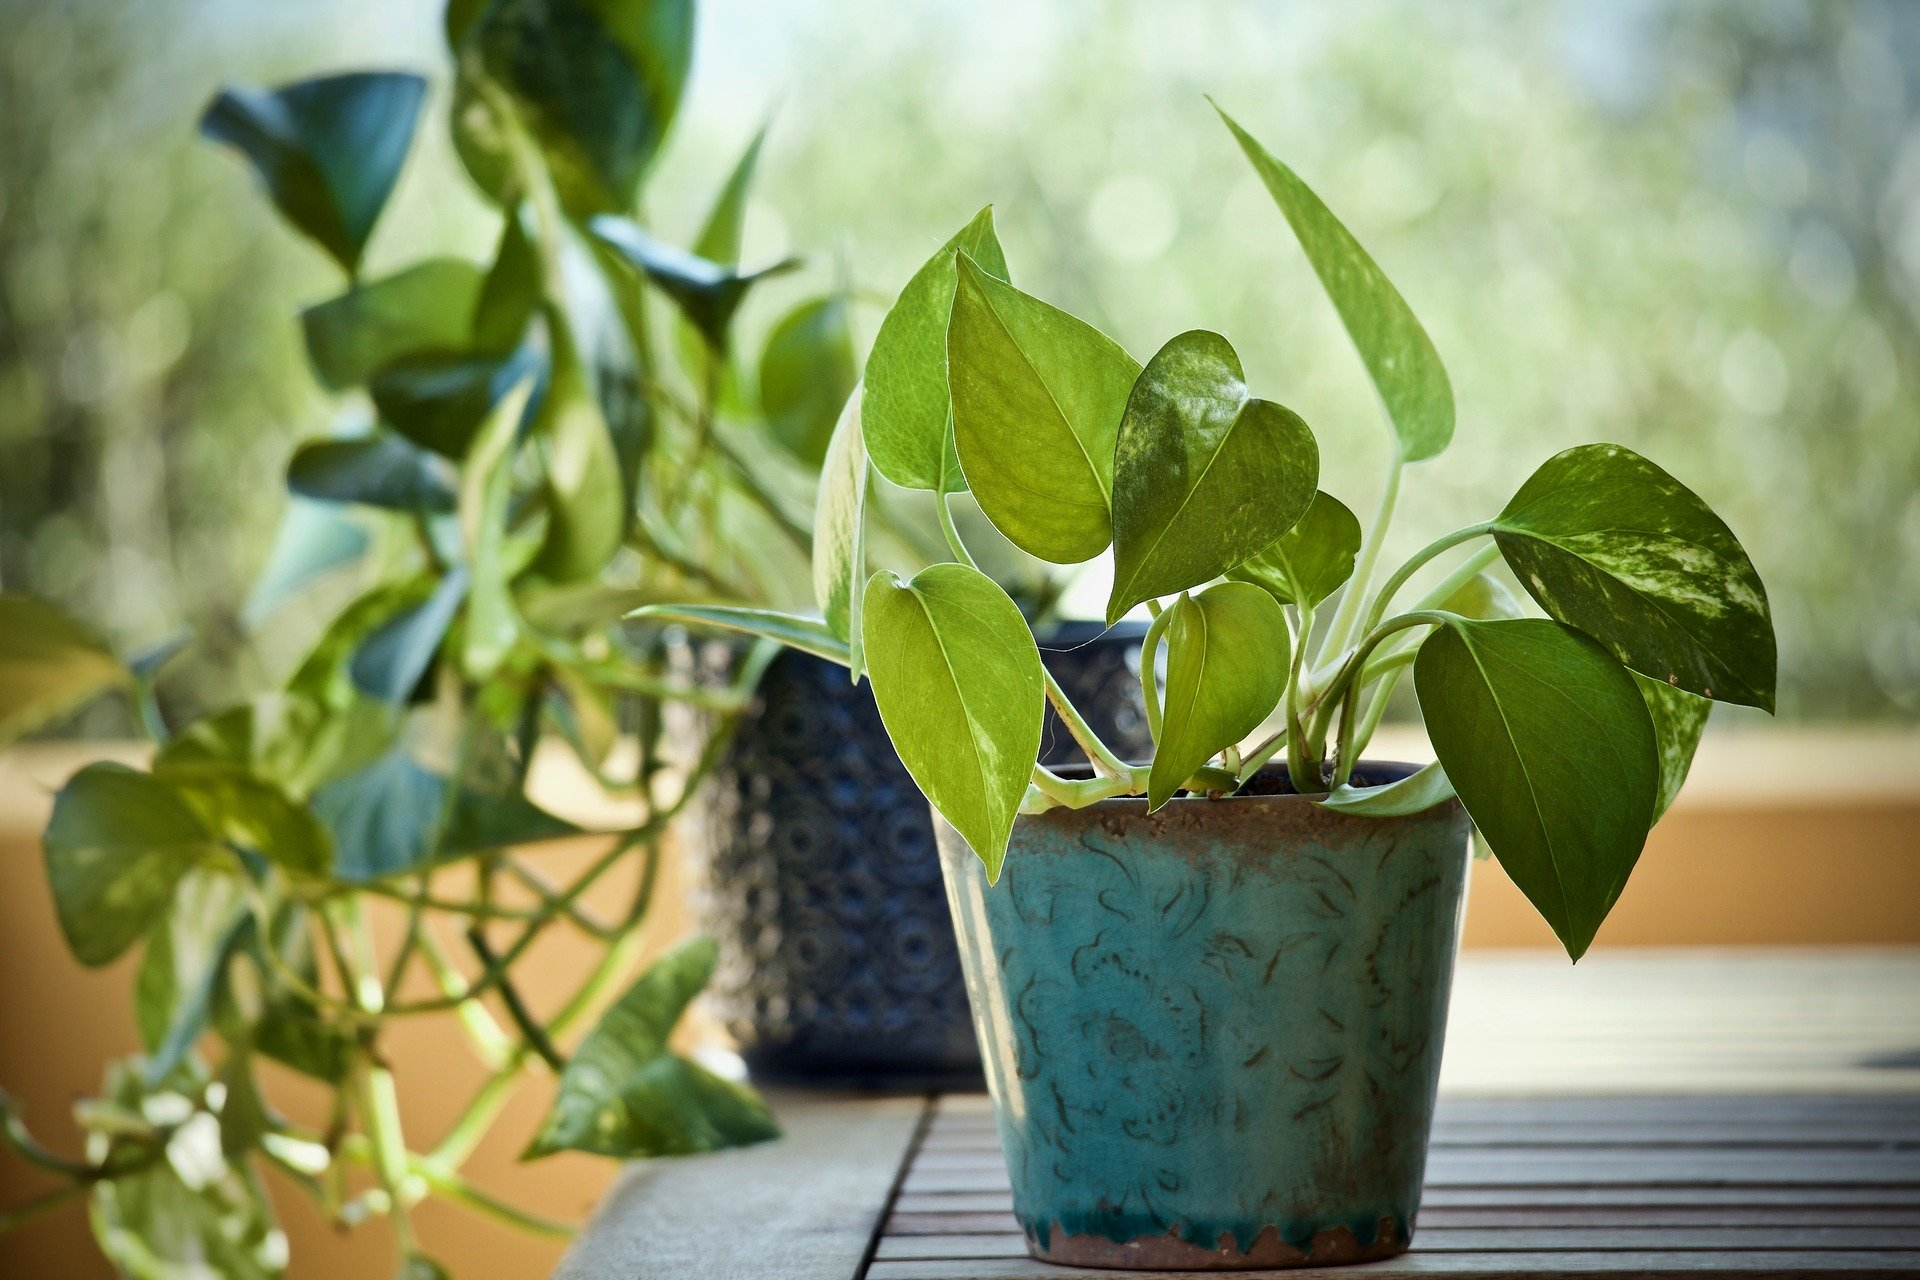 Potted pothos vine growing out of a blue planter on a table in the sun